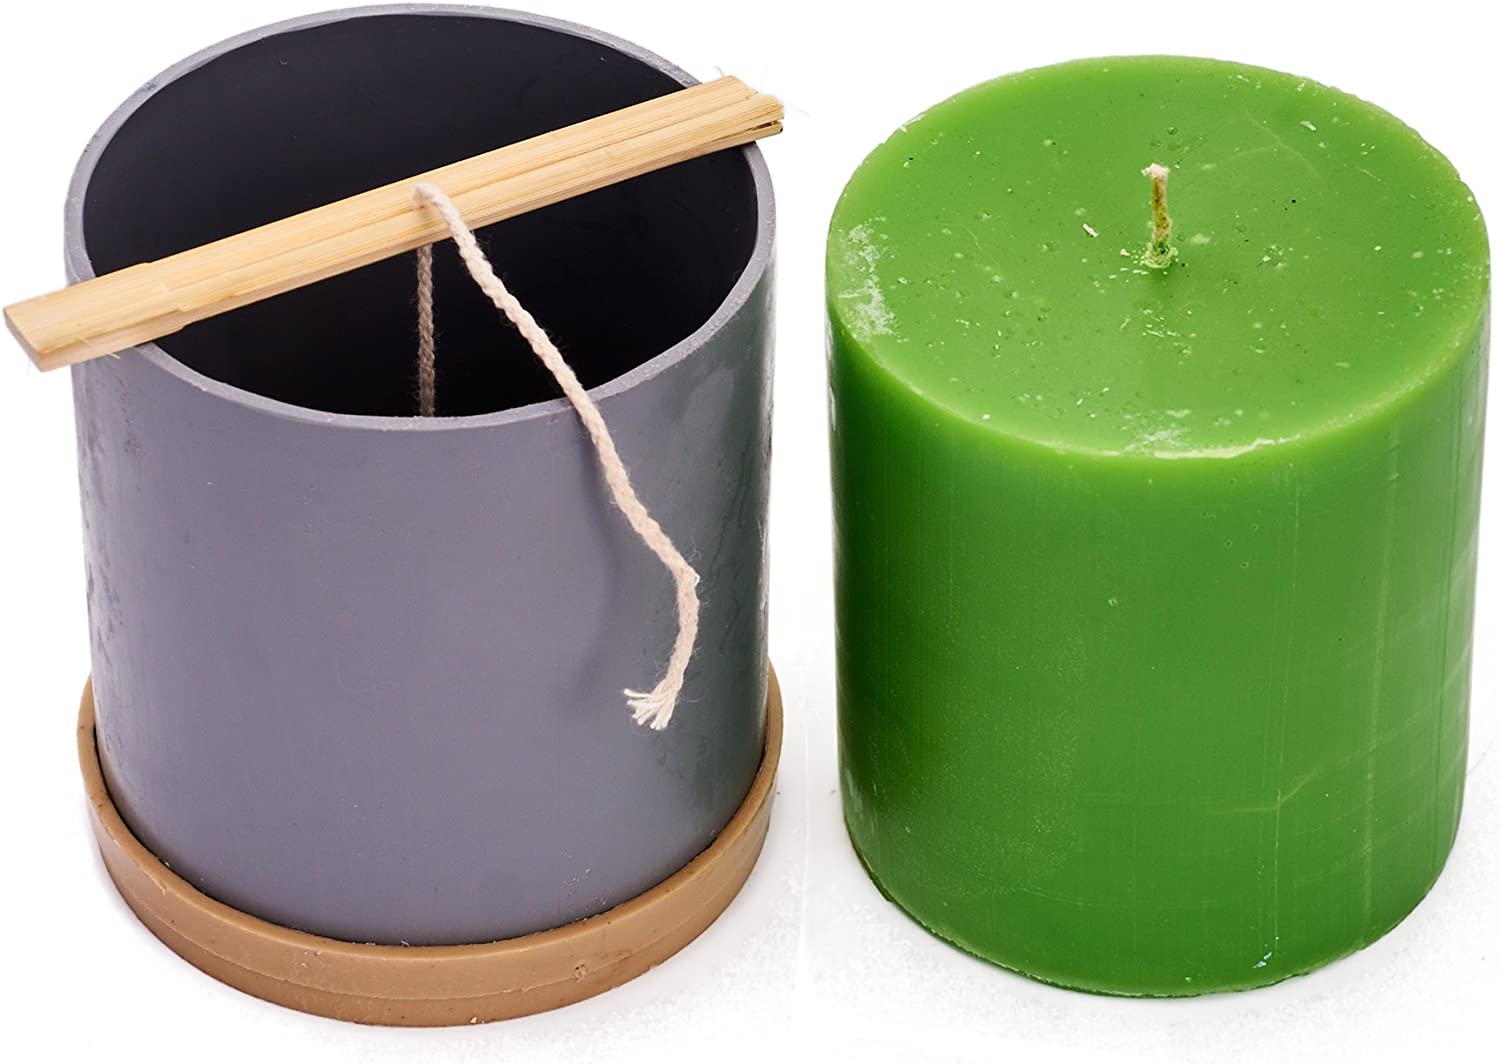 СYlinder Mold - Height: 4.3 In, Width: 3.9 bei - 30 Ft. von Wick Included wie ein Gift - Plastic Candle Molds für Making Candles